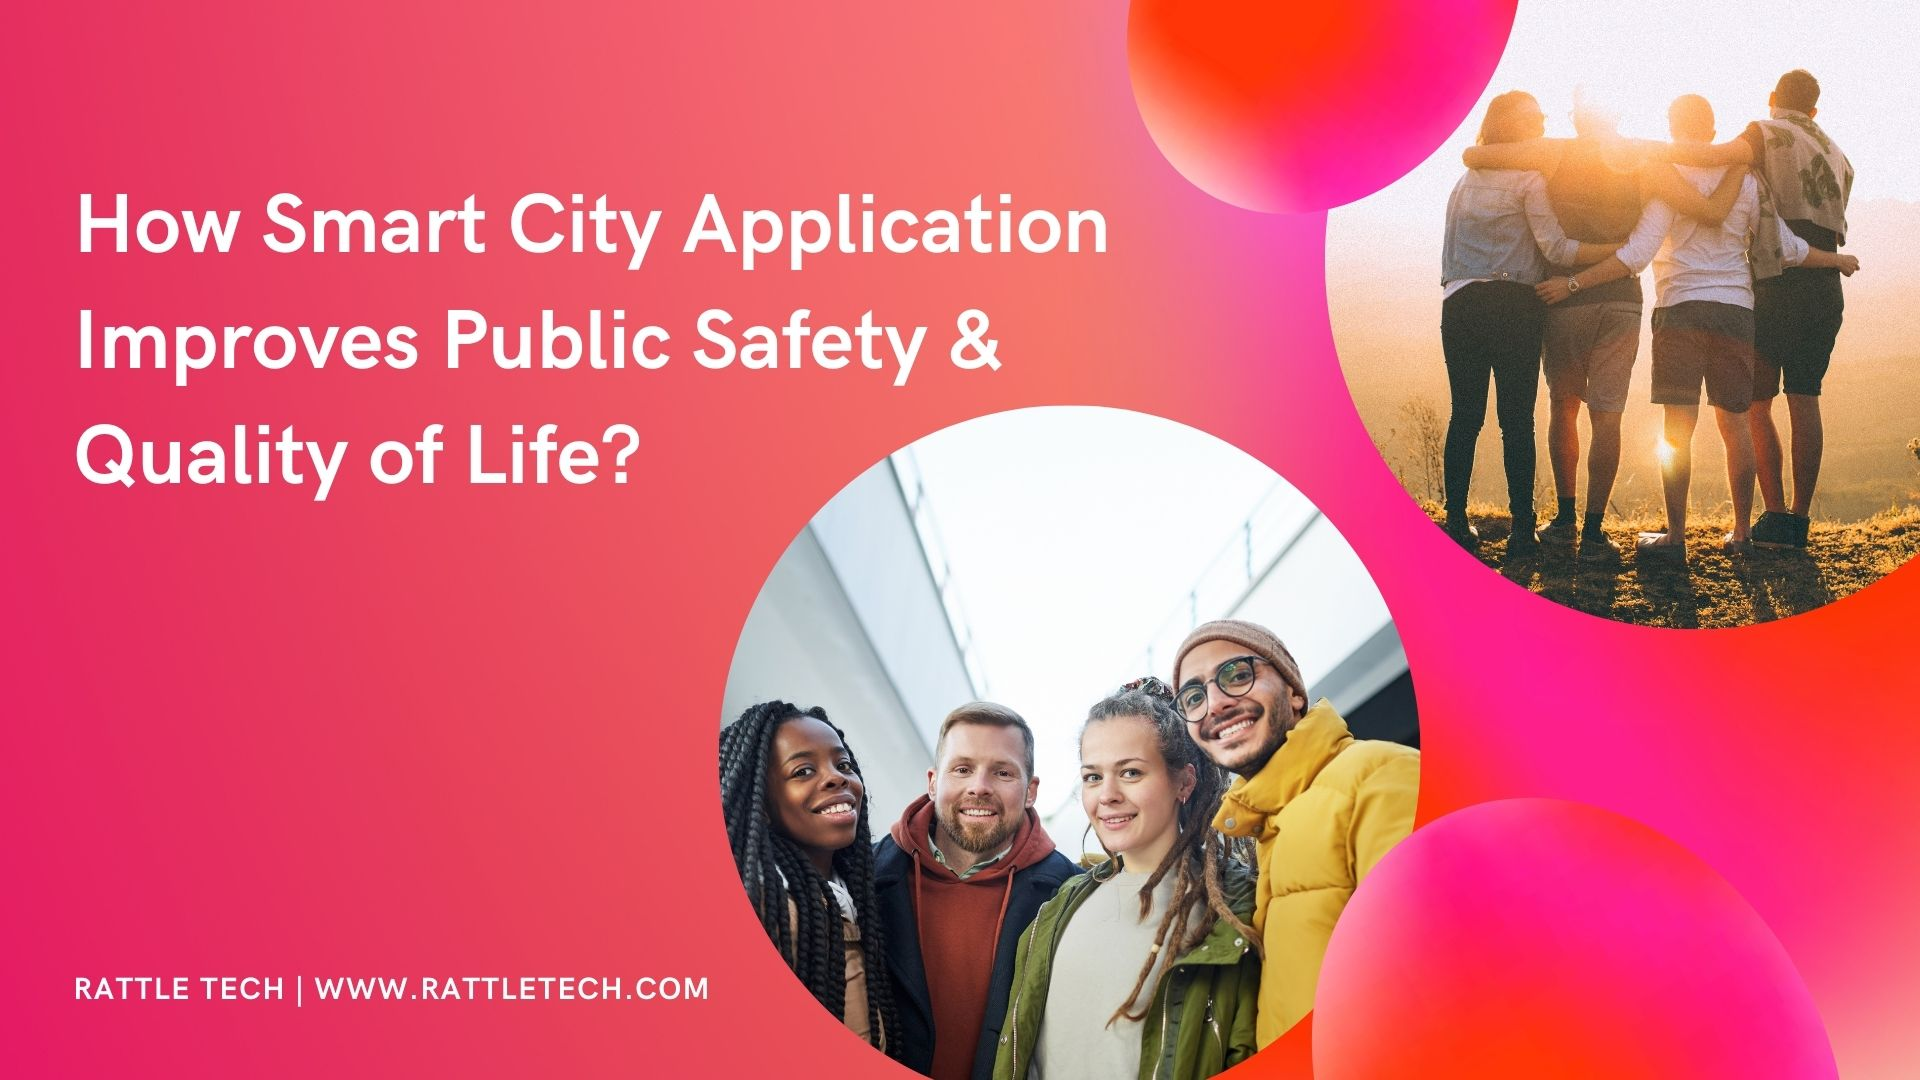 How smart city application improves public safety?